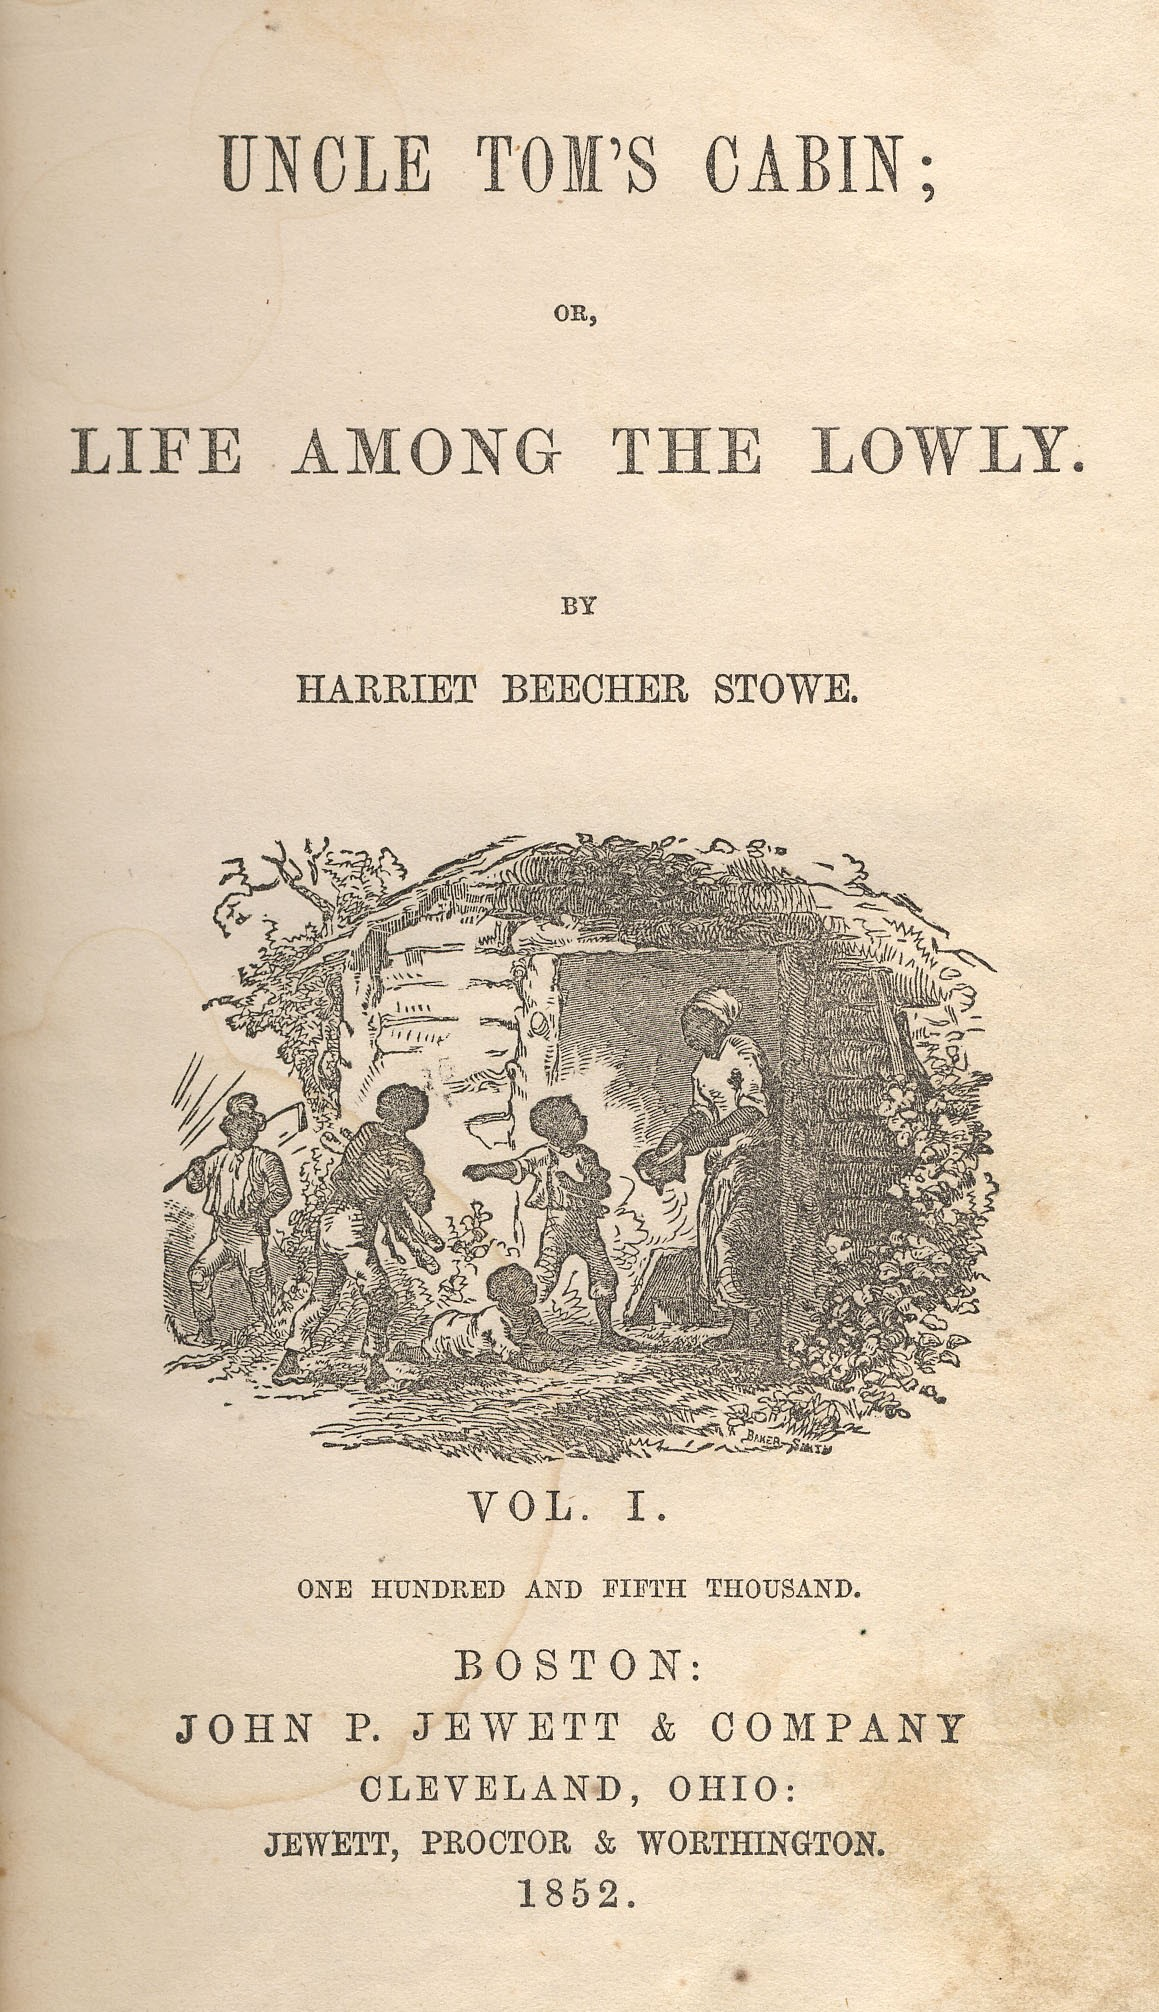 Title page of Uncle Tom's Cabin, 1852.